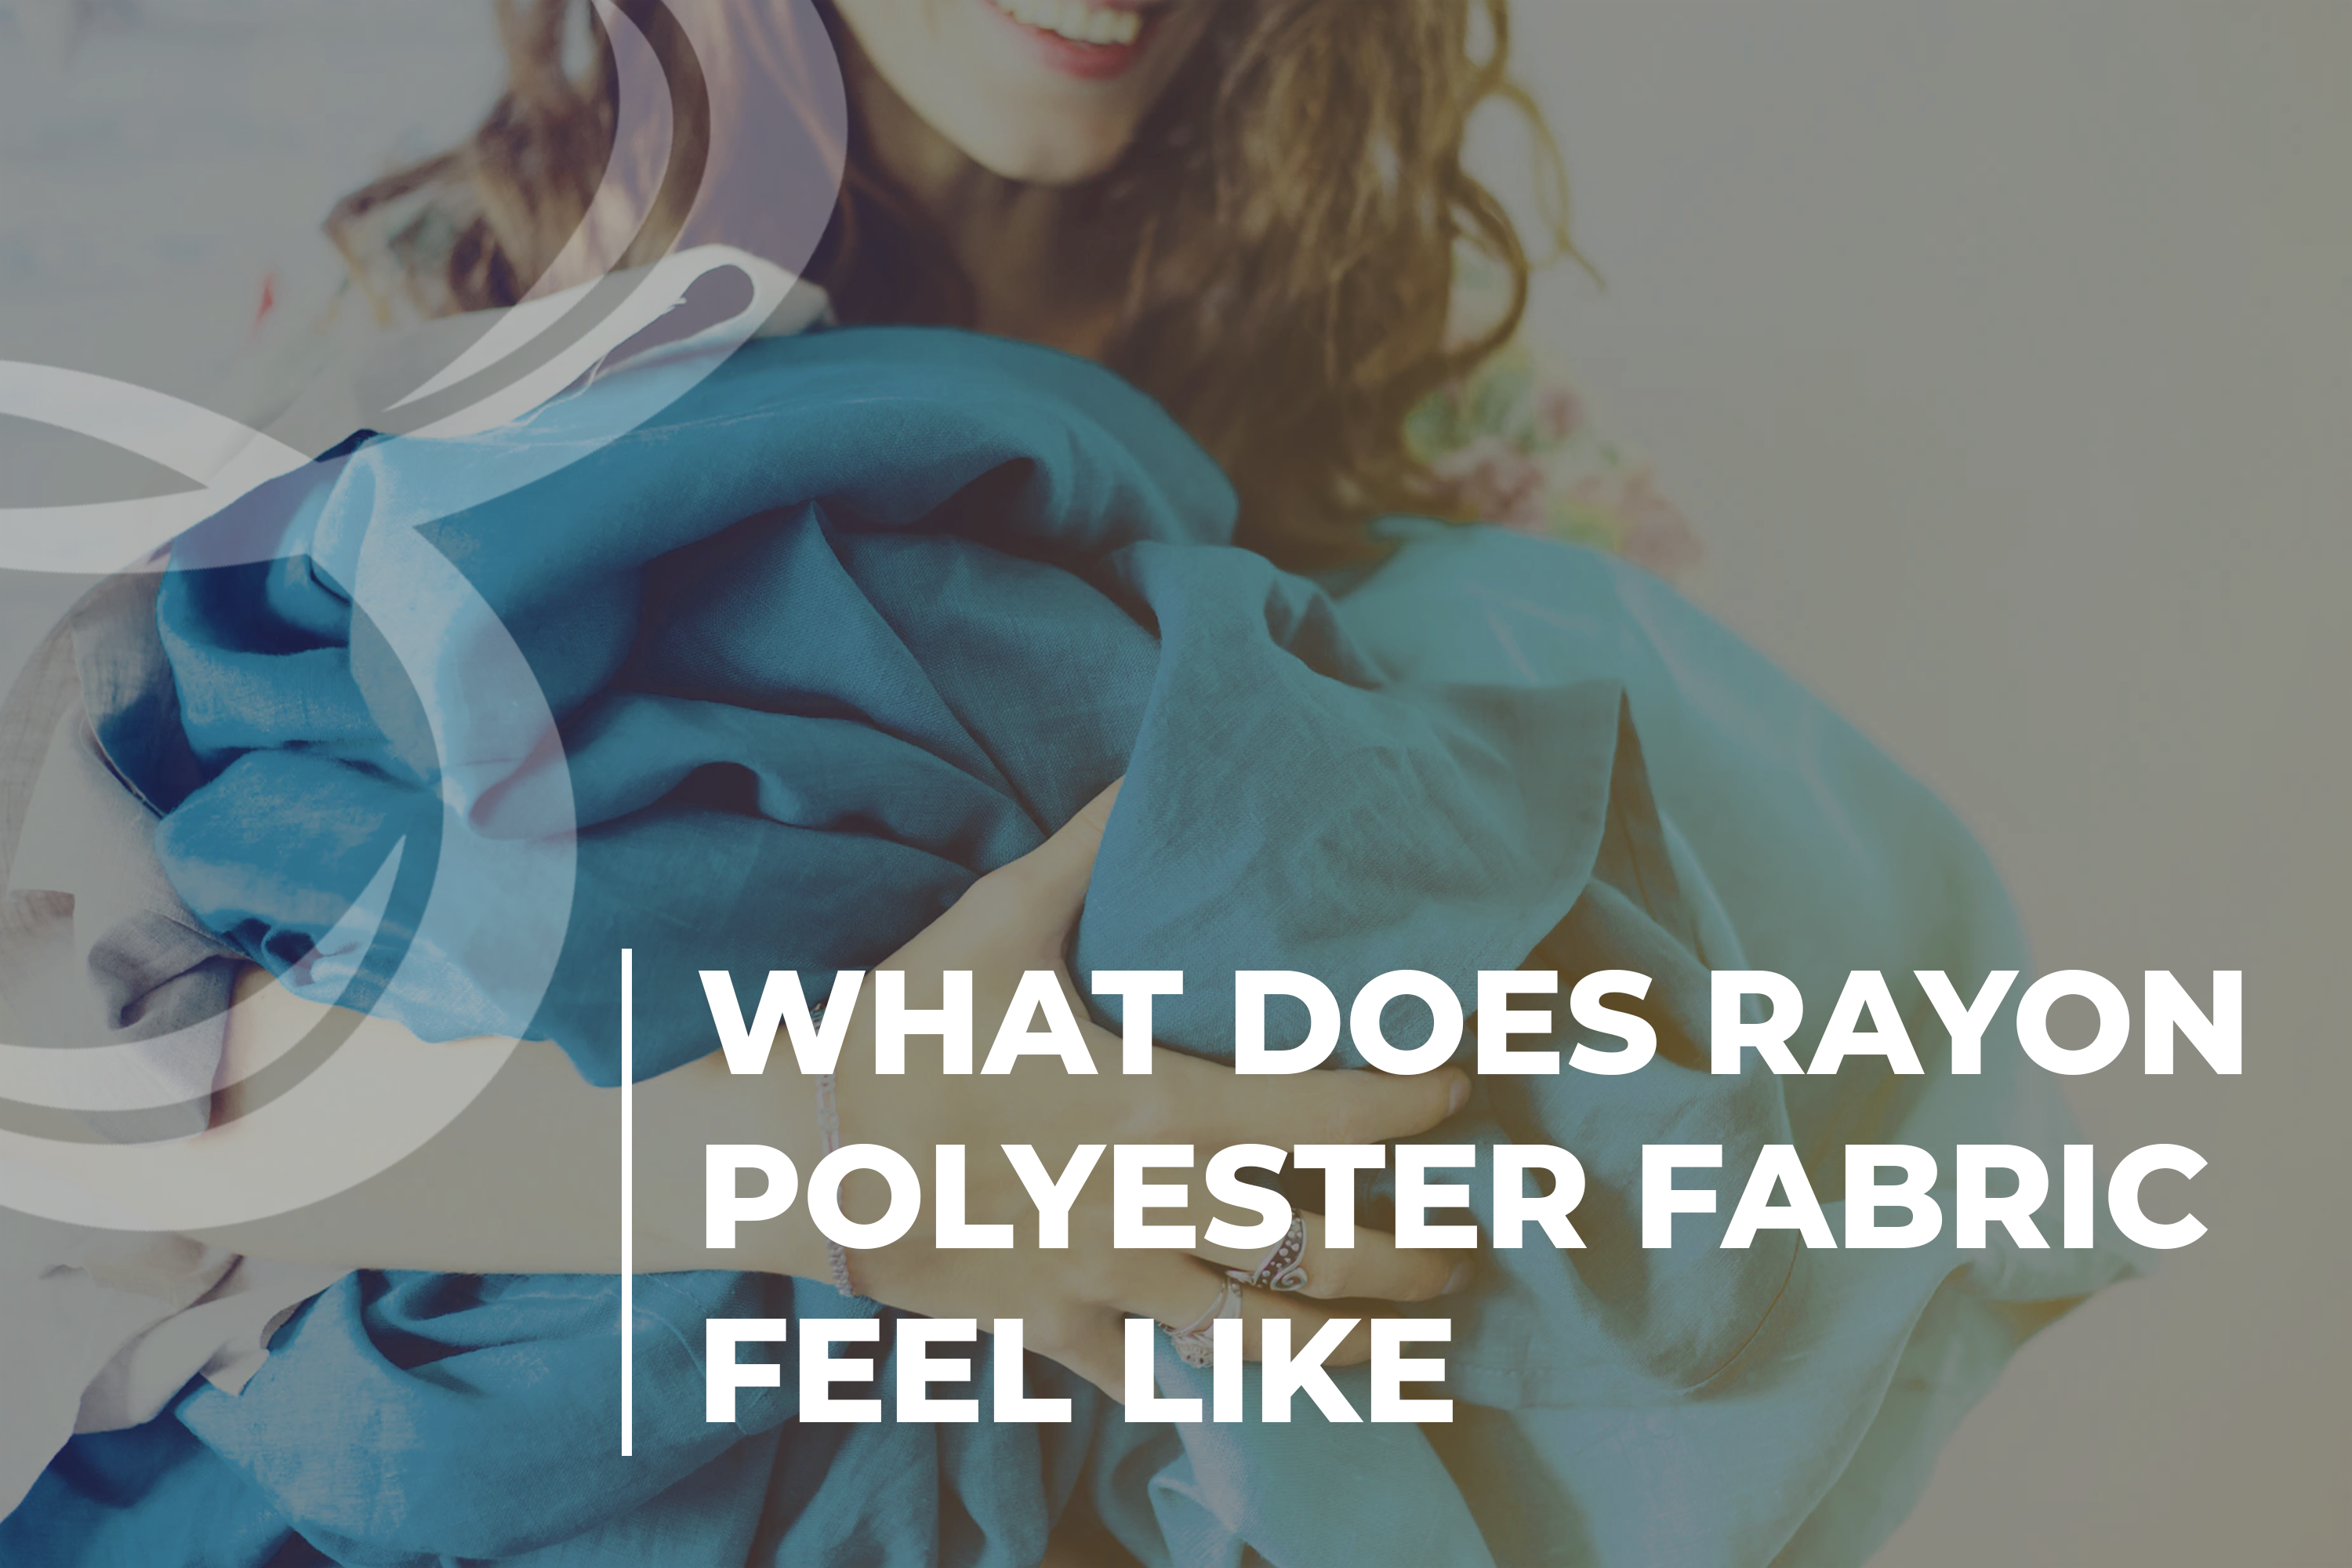 What Does Rayon Polyester Fabric Feel Like